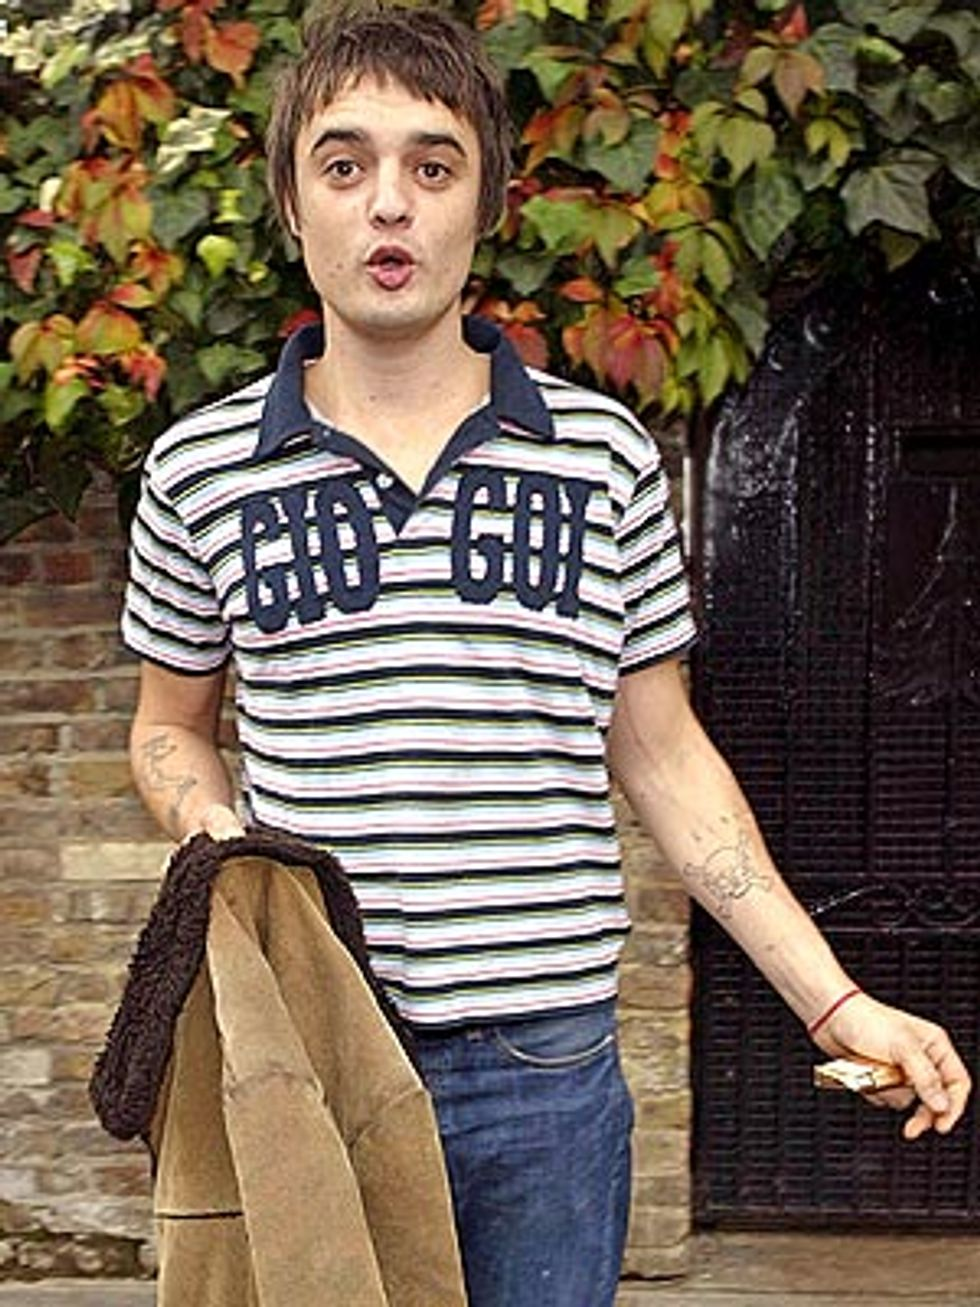 Eight Items or Less: Pete Doherty, The Cozy Coupe & Stars Like Fleas